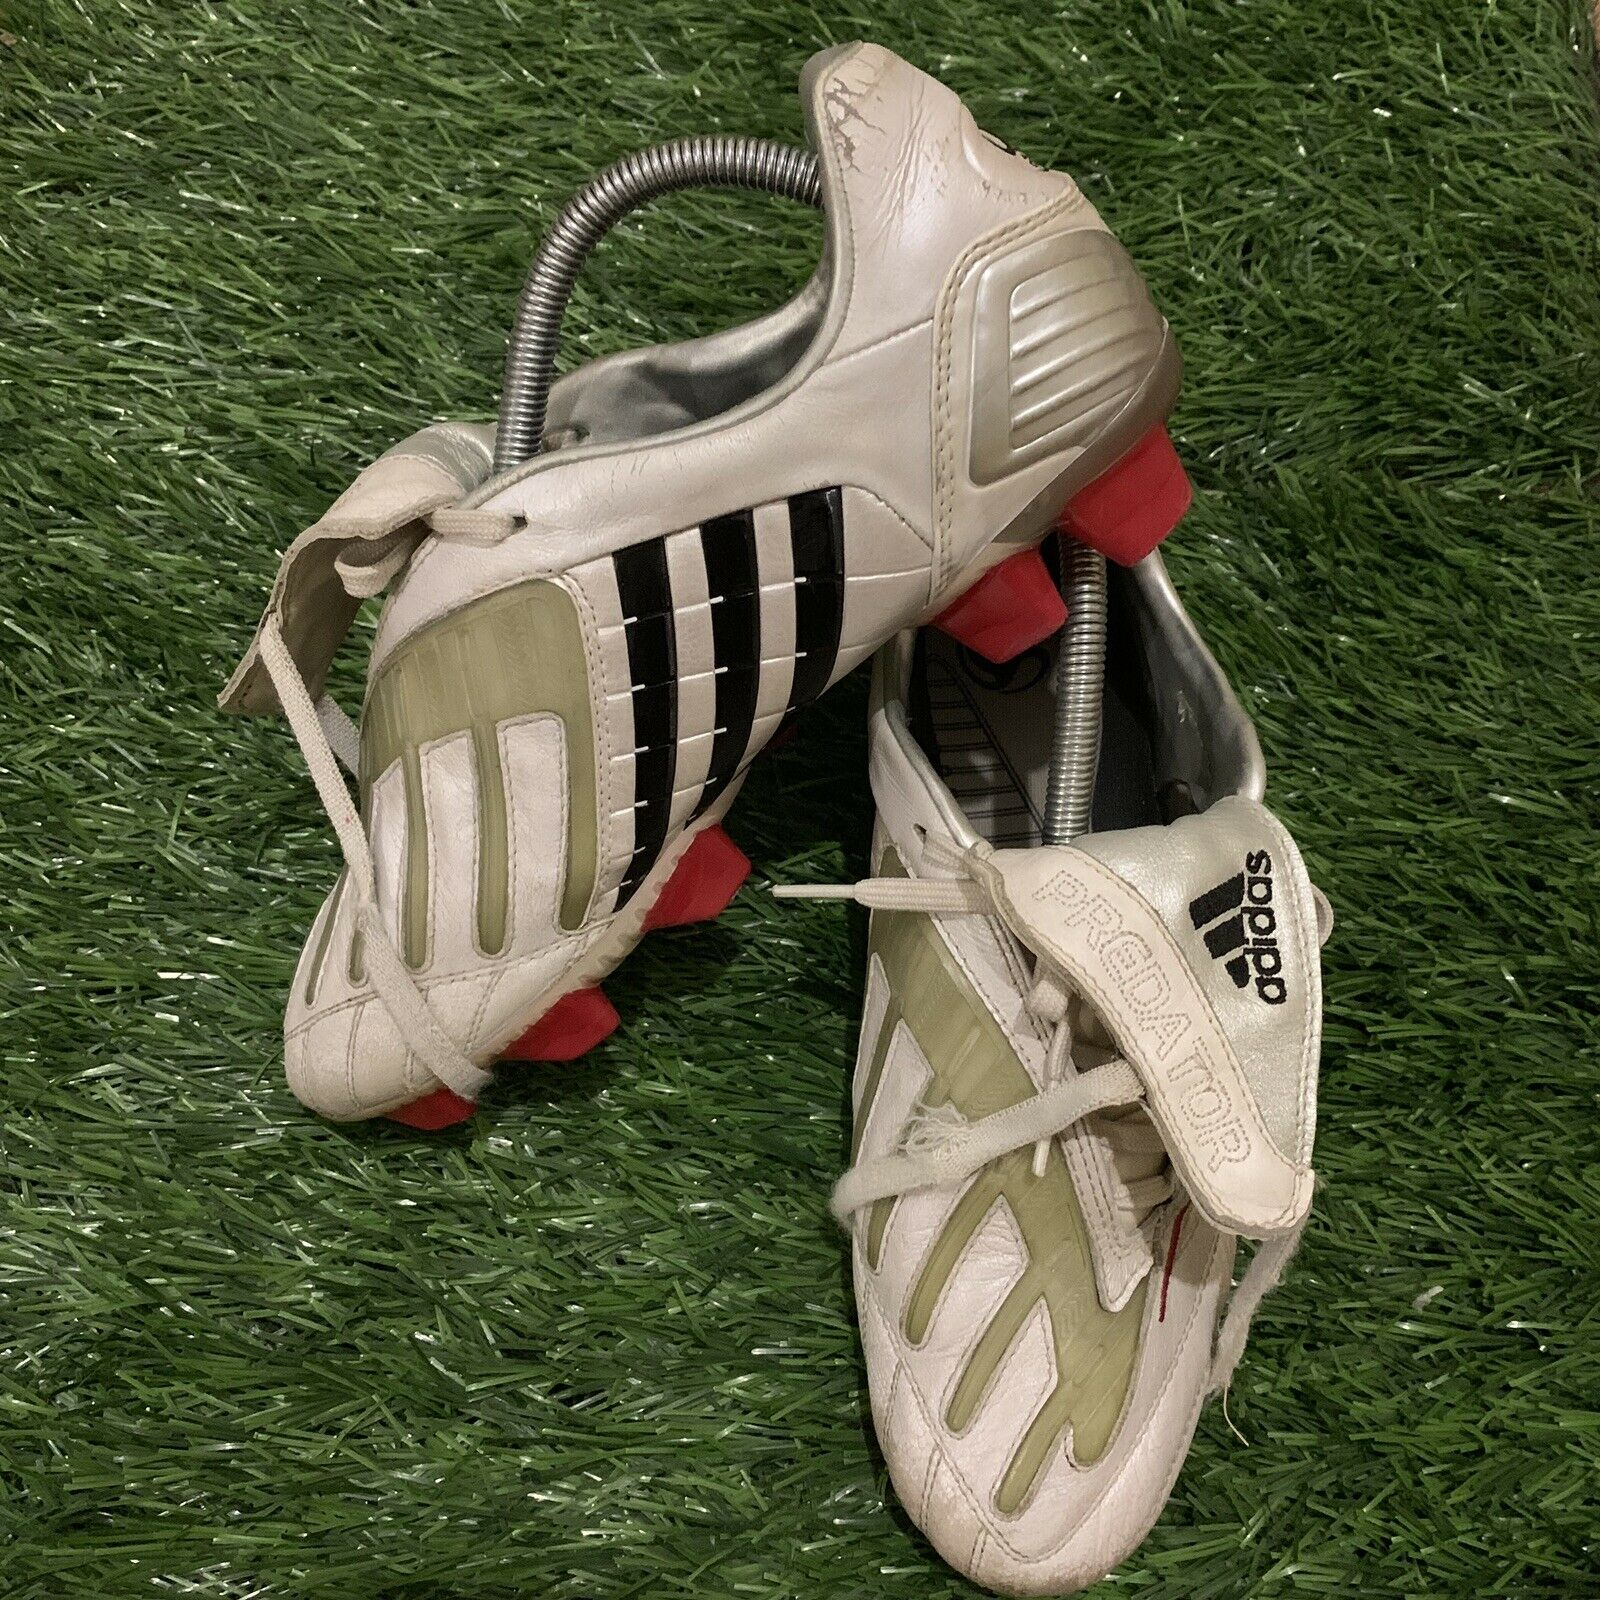 Adidas Prossoator energiaswerve Absolion TRX FG 012674 8US 7,5UK 2007